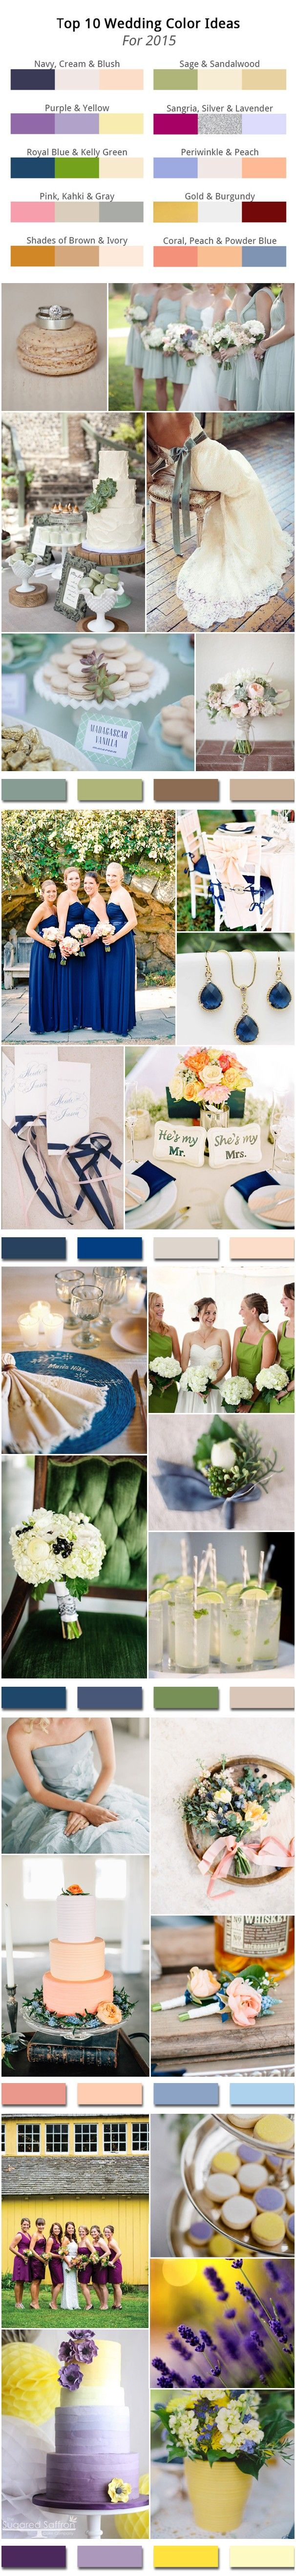 Top 10 Wedding Color Ideas for 2015 Trends #elegantweddinginvites the first one <3